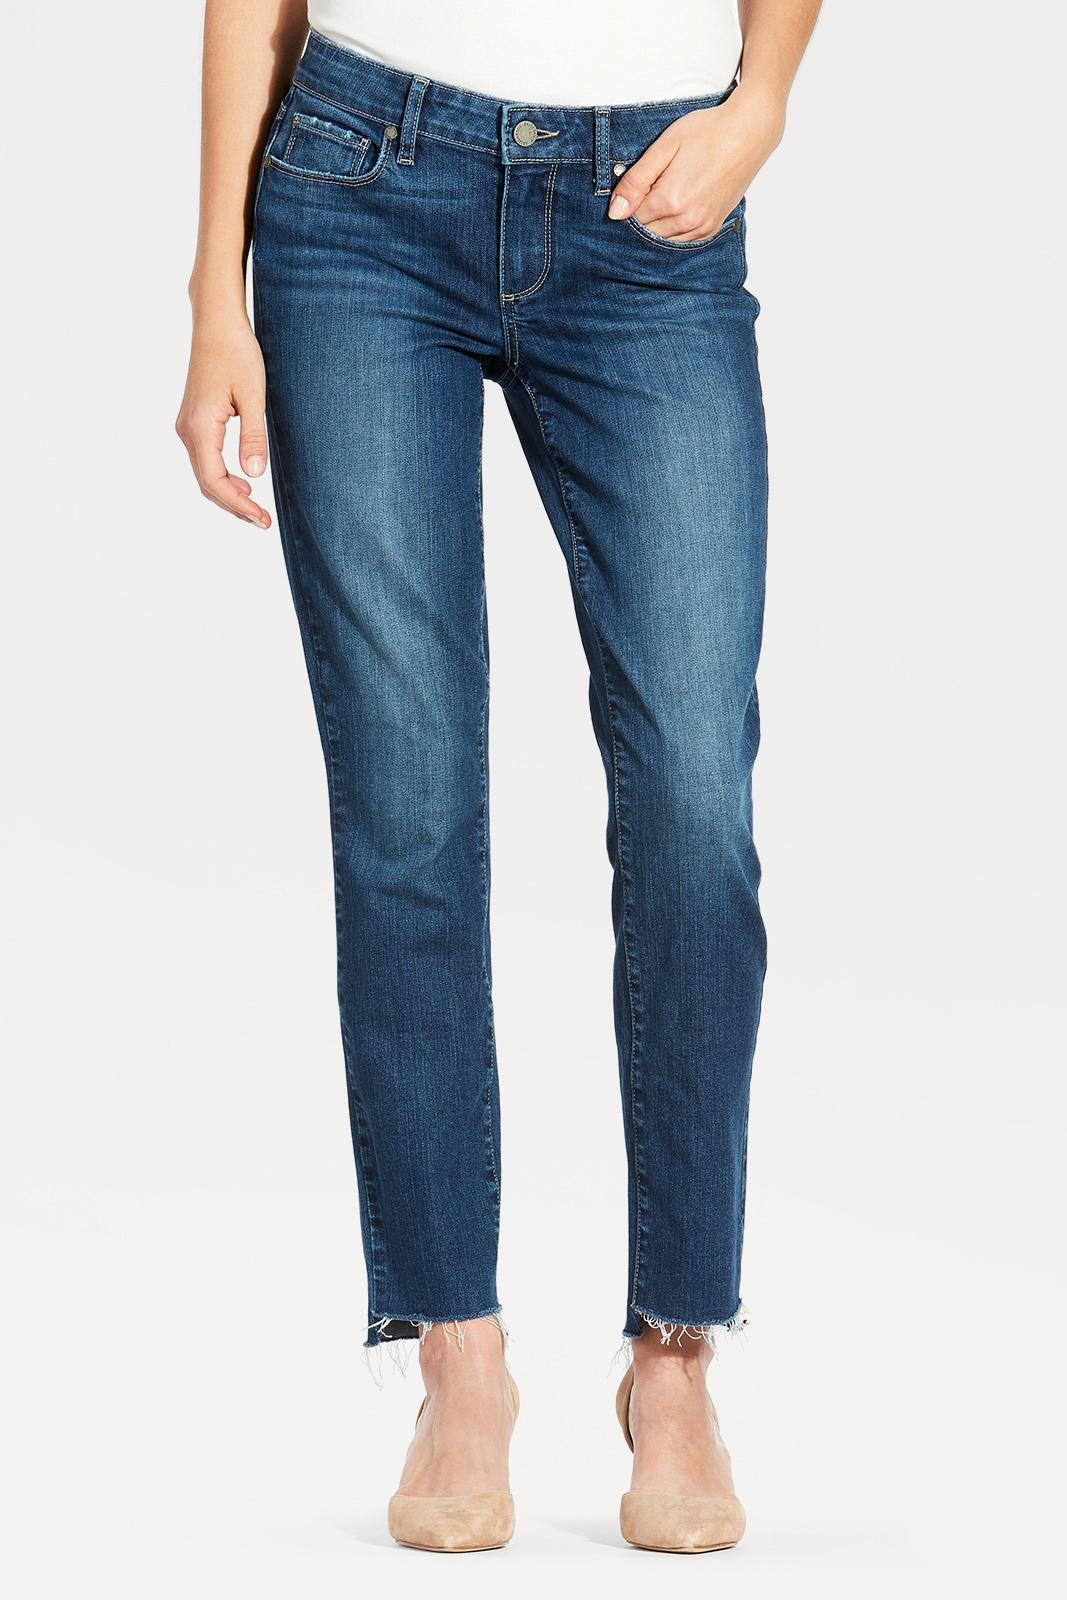 paige denim ryder step hem item # 3391981-5050 odvqmid